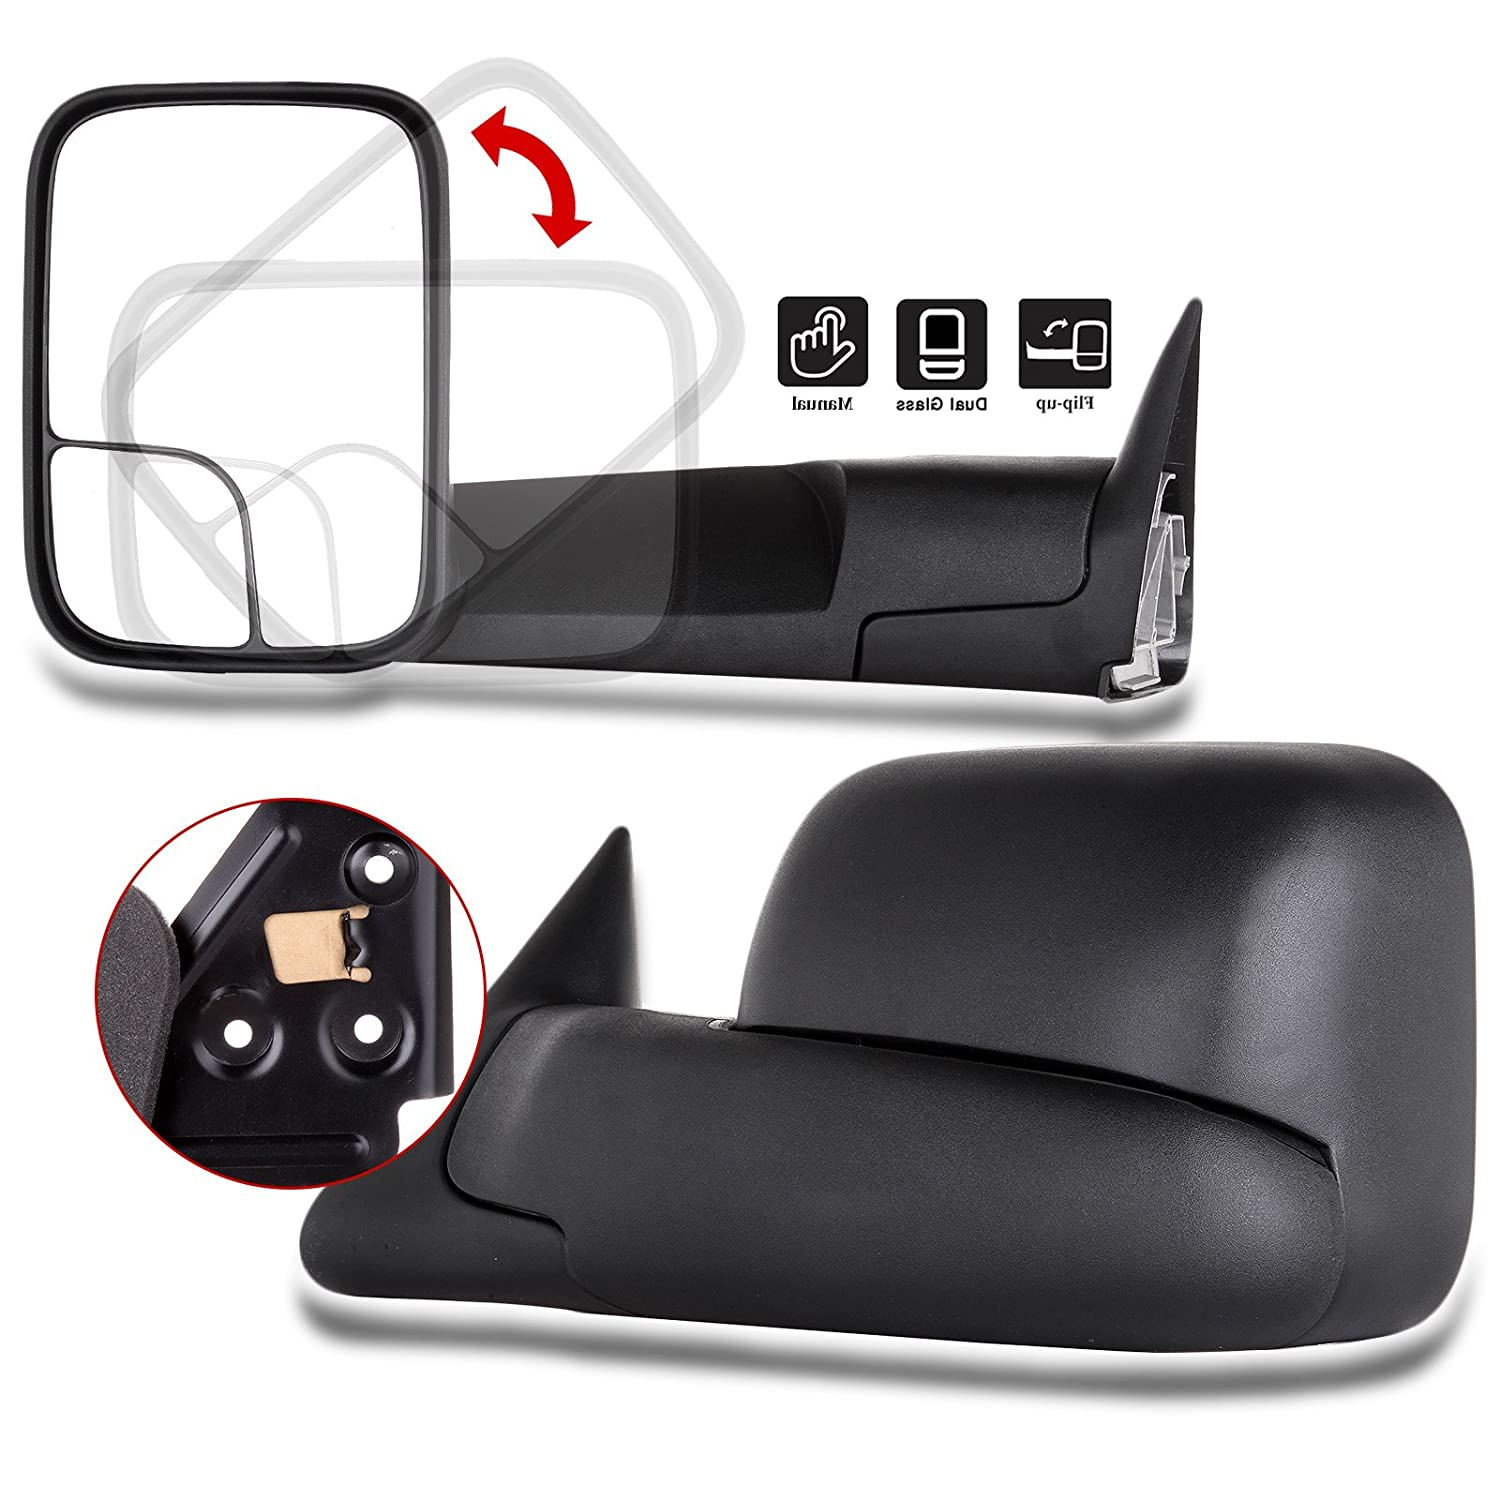 SCITOO Compatible fit for Towing Mirrors 1994 1995 1996 1997 Dodge Ram 1500 2500 3500 Truck Black Power Operation Pair Set Mirrors 050489-5206-1751433